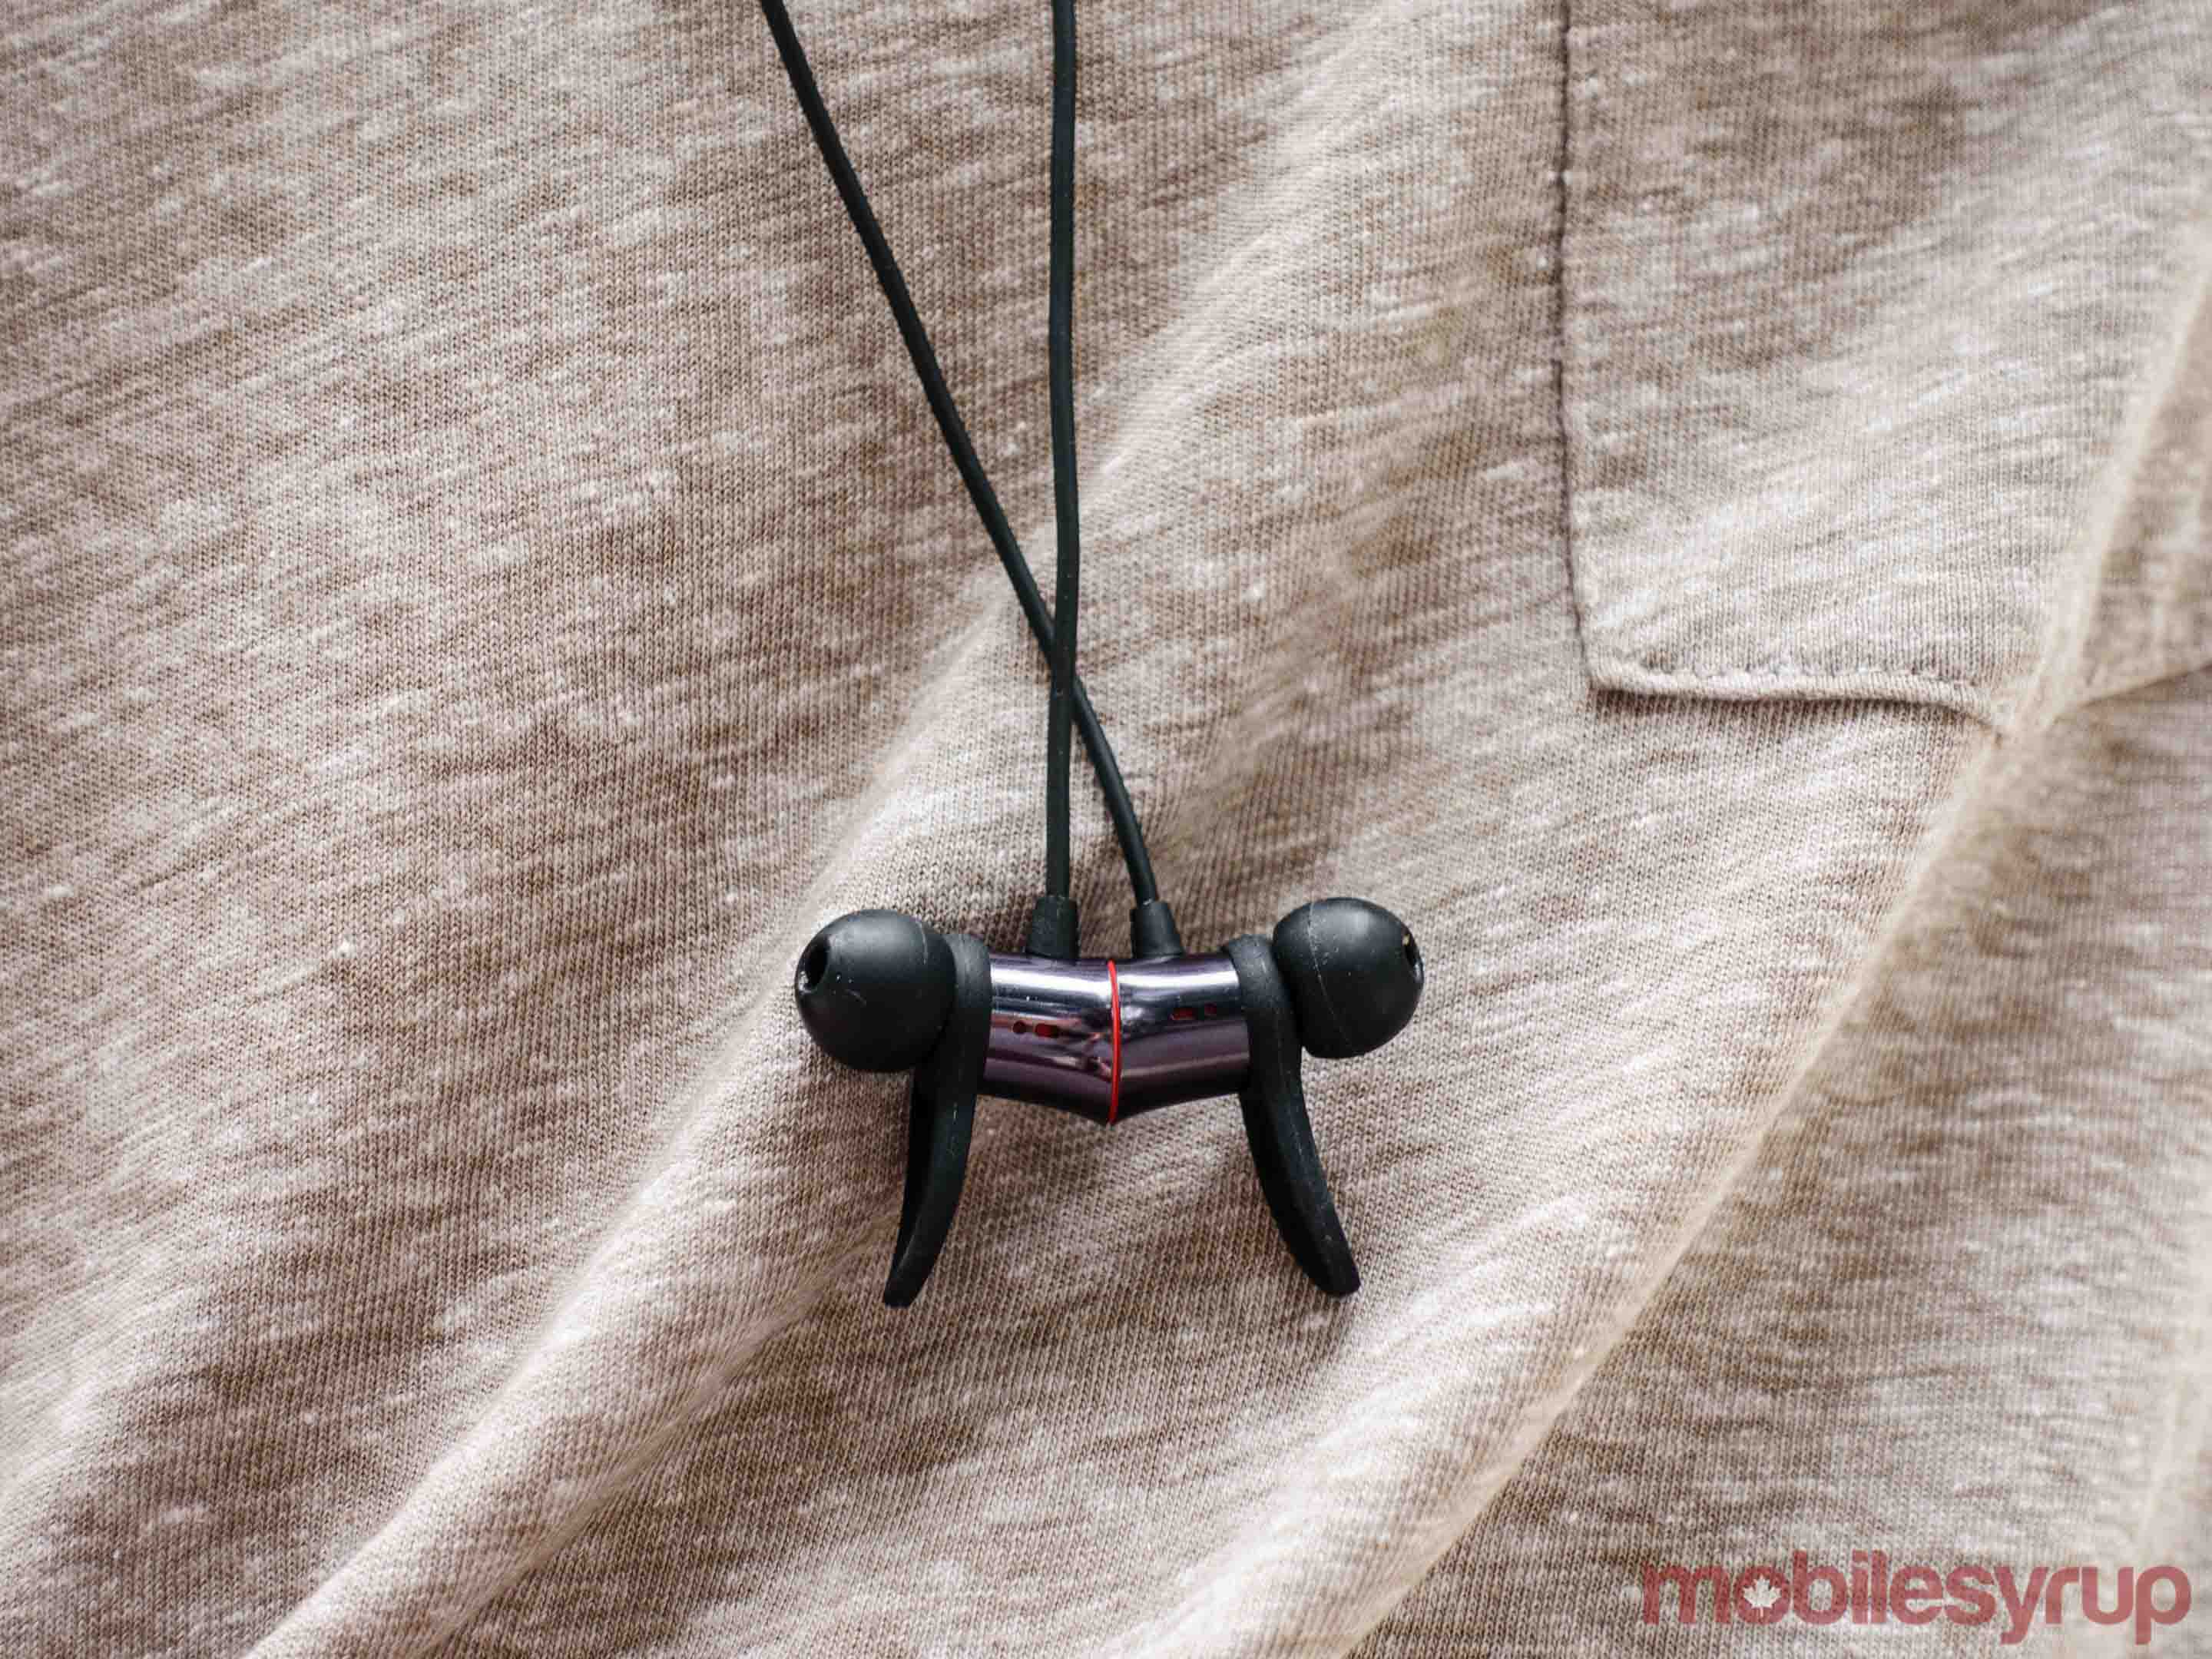 The Bullets Wireless drivers are magnetized